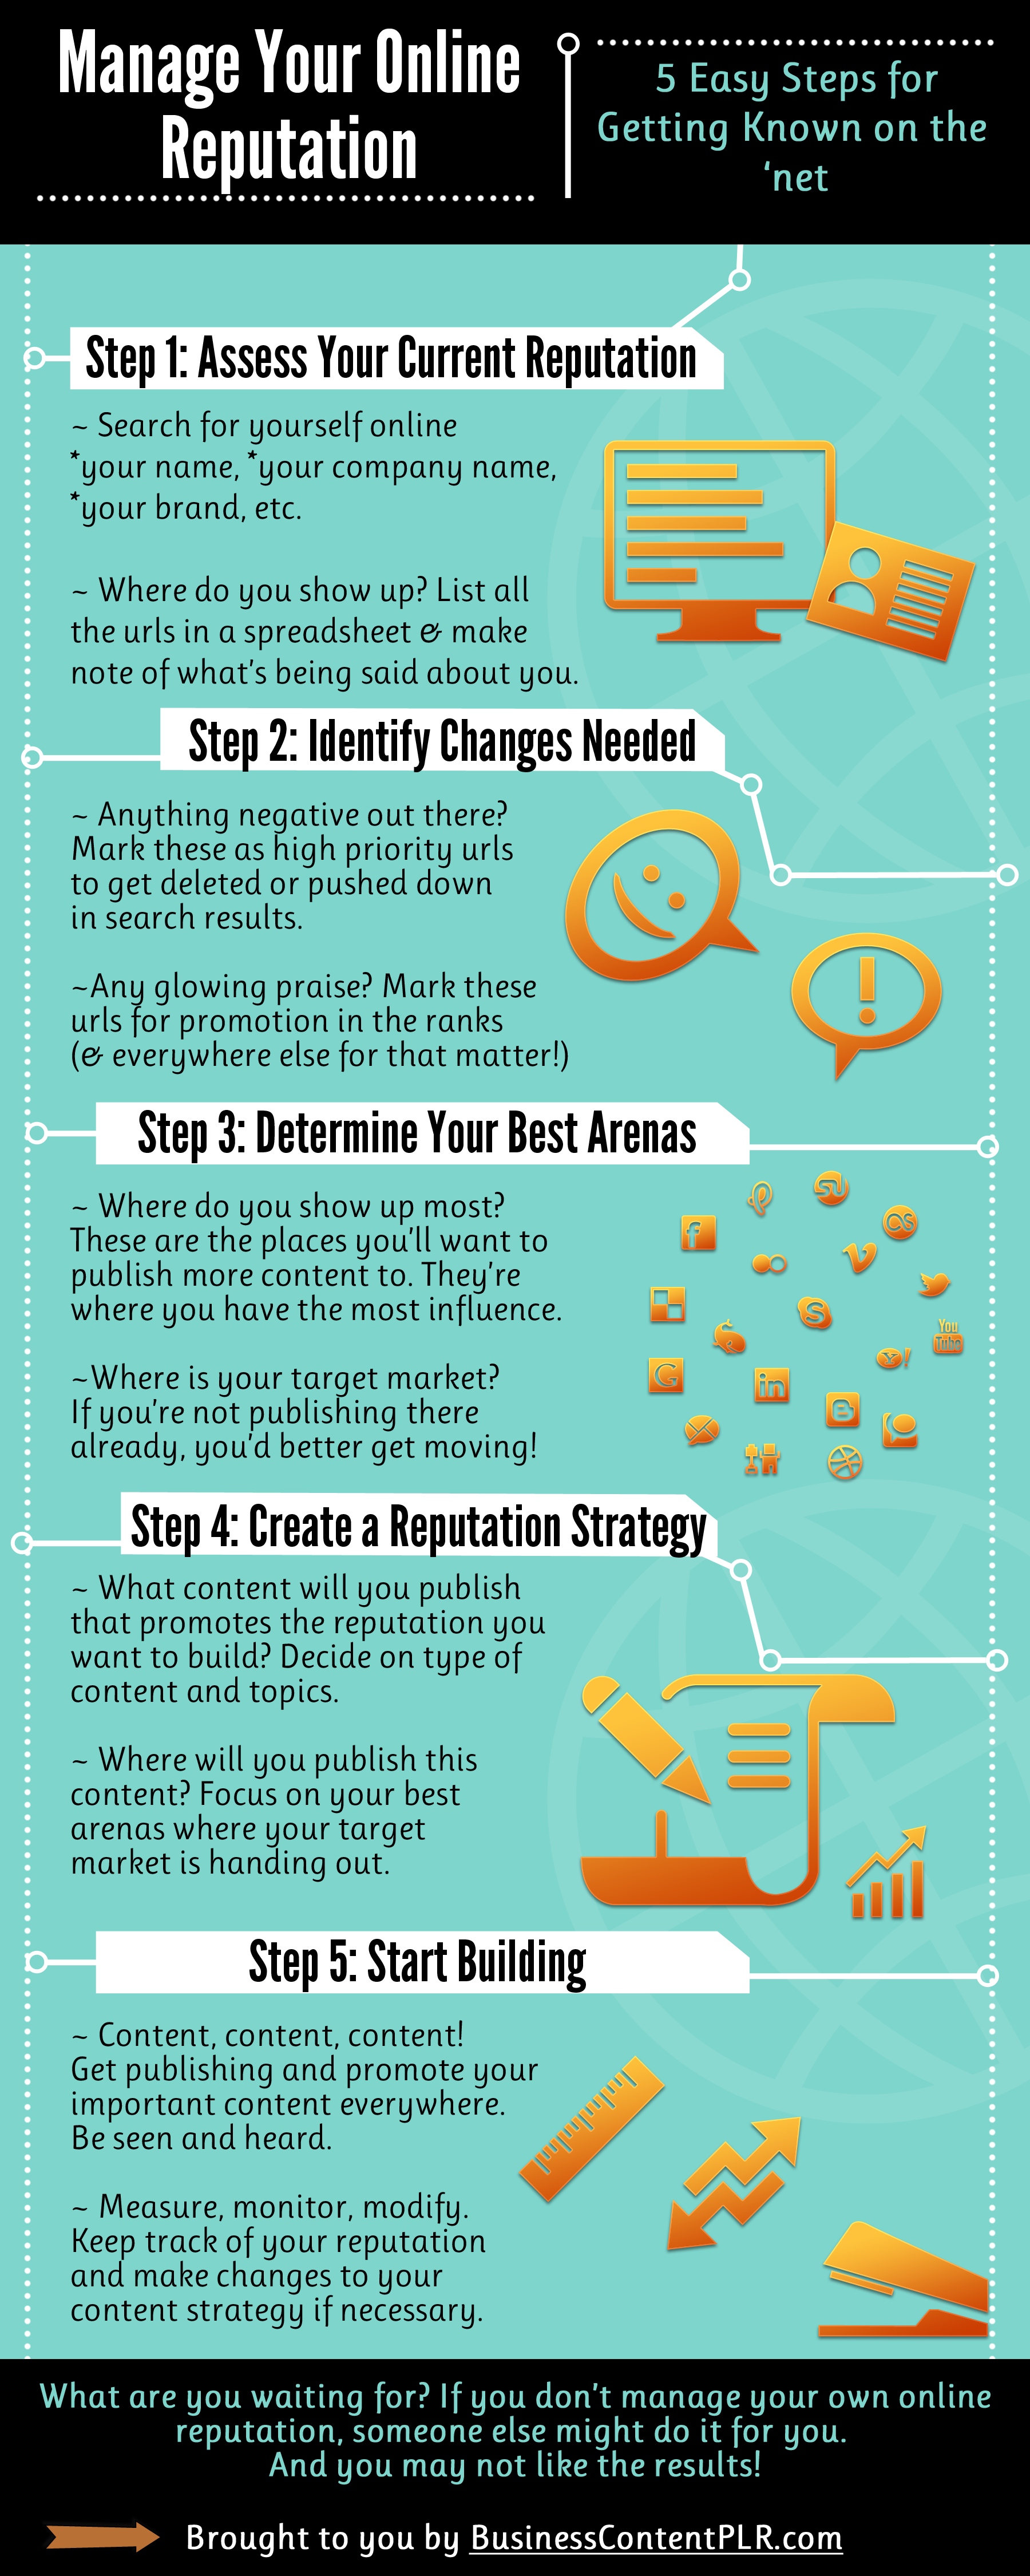 Free PLR infographic - Manage Your Online Reputation in 5 easy steps